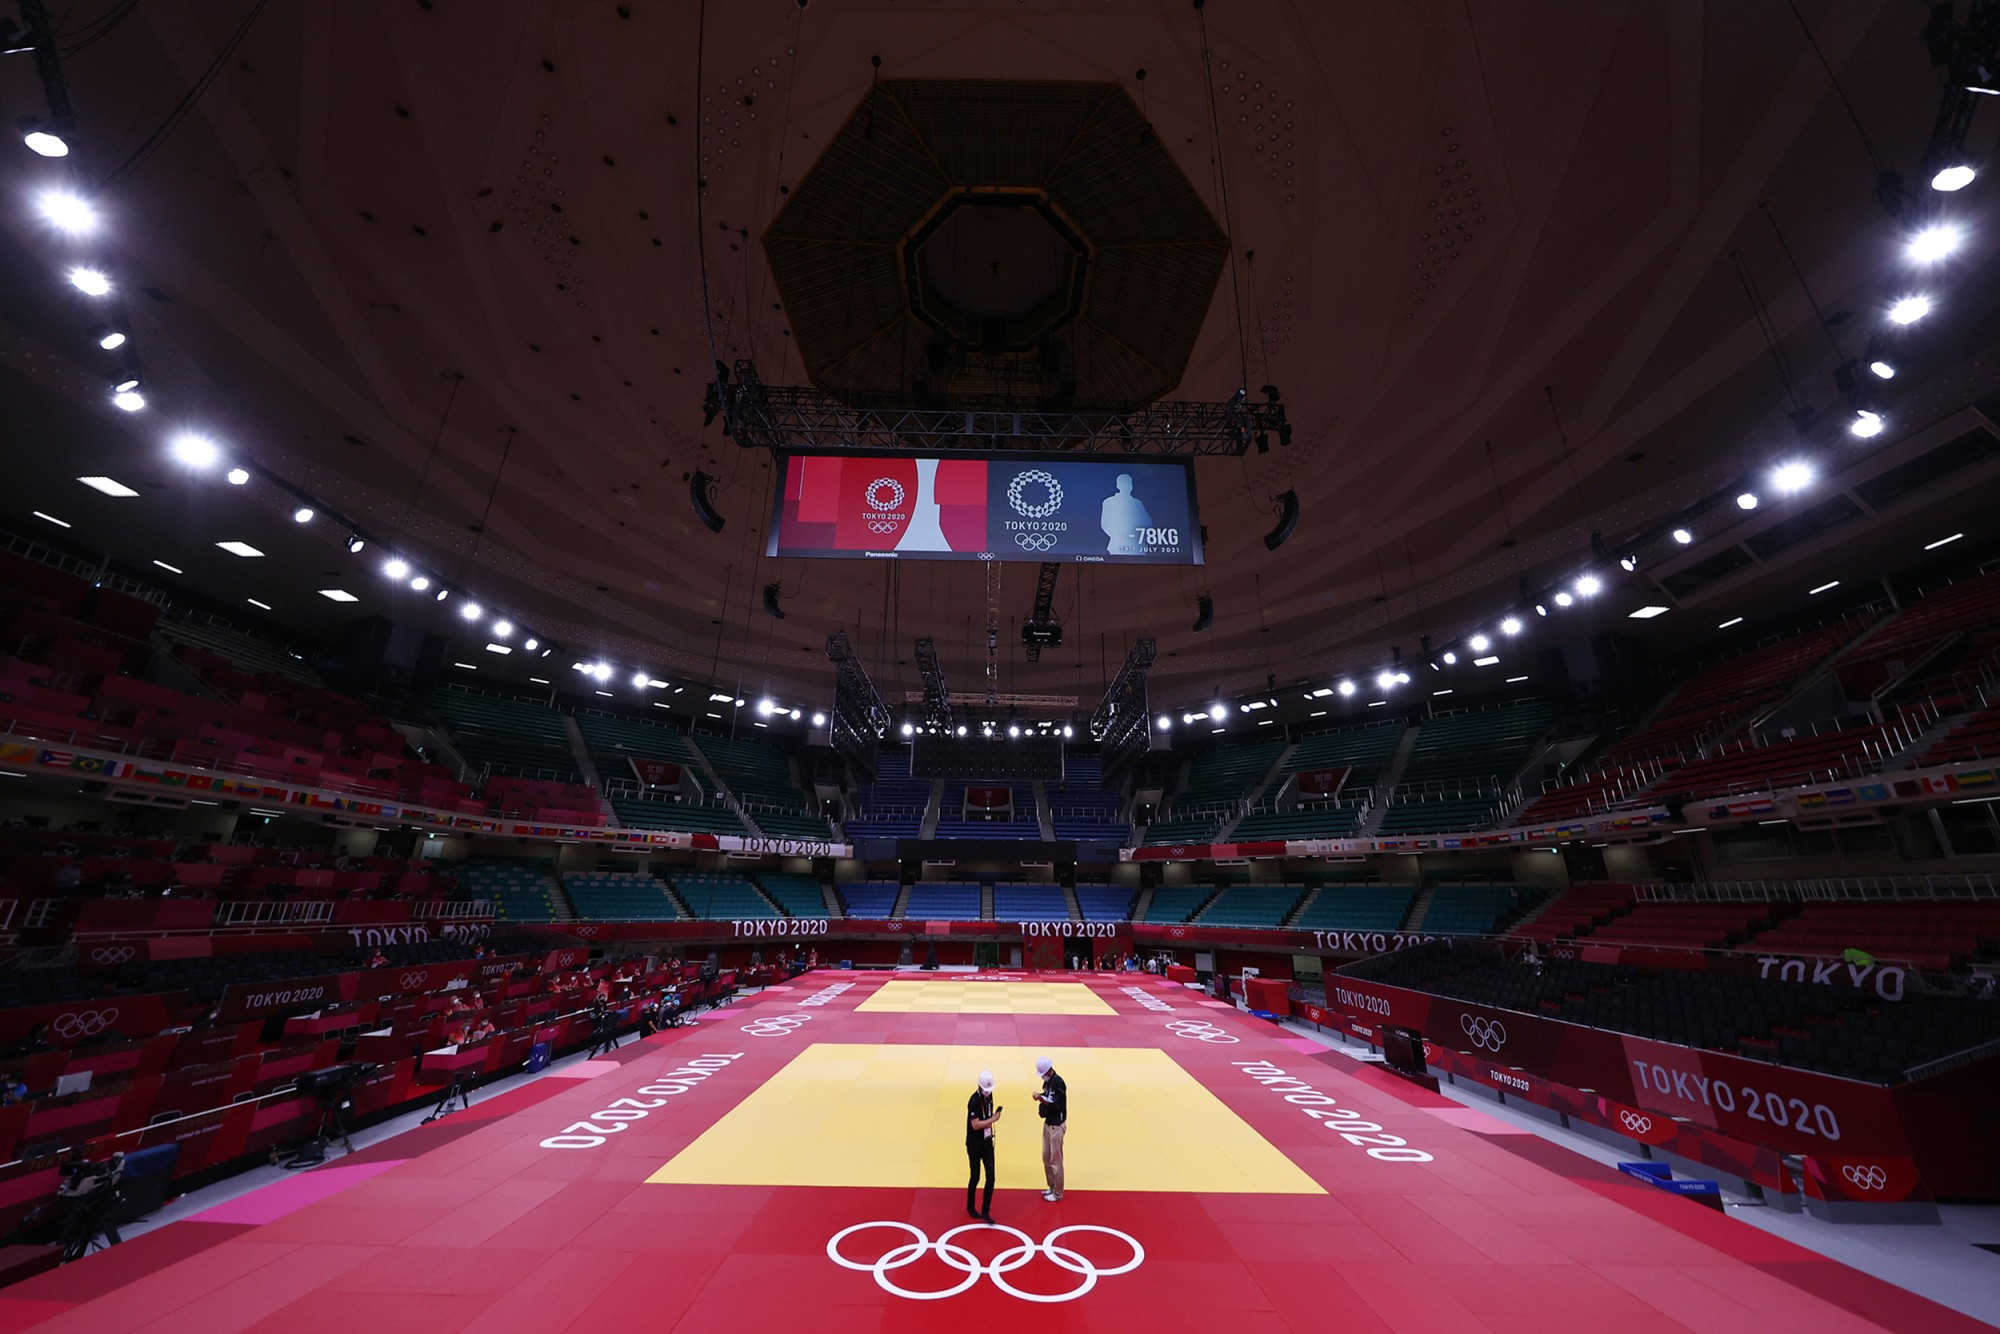 Algerian Withdraws from Olympics After Refusing to Fight Israeli in Judo Match